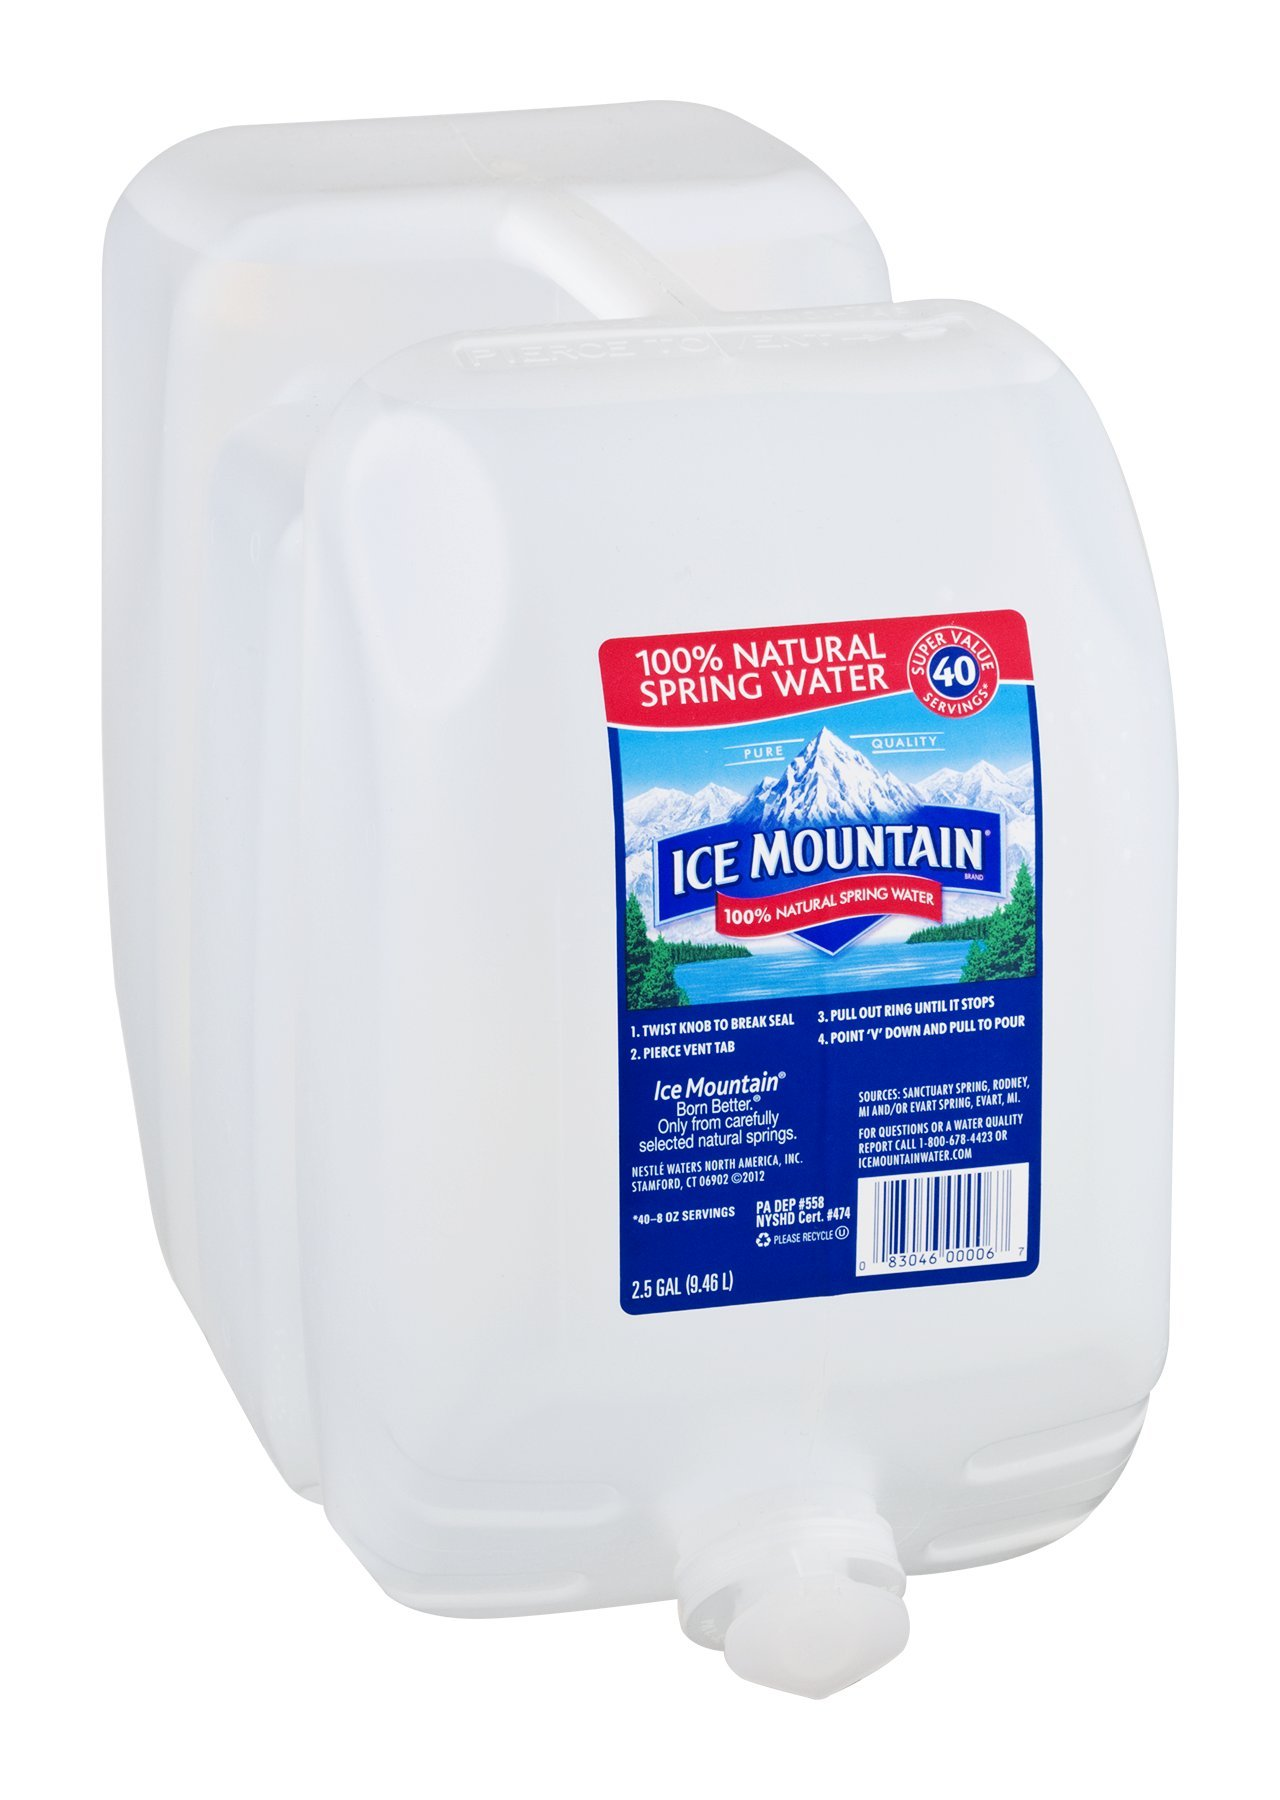 Ice Mountain 100% Natural Spring Water 320 OZ (Pack of 2)